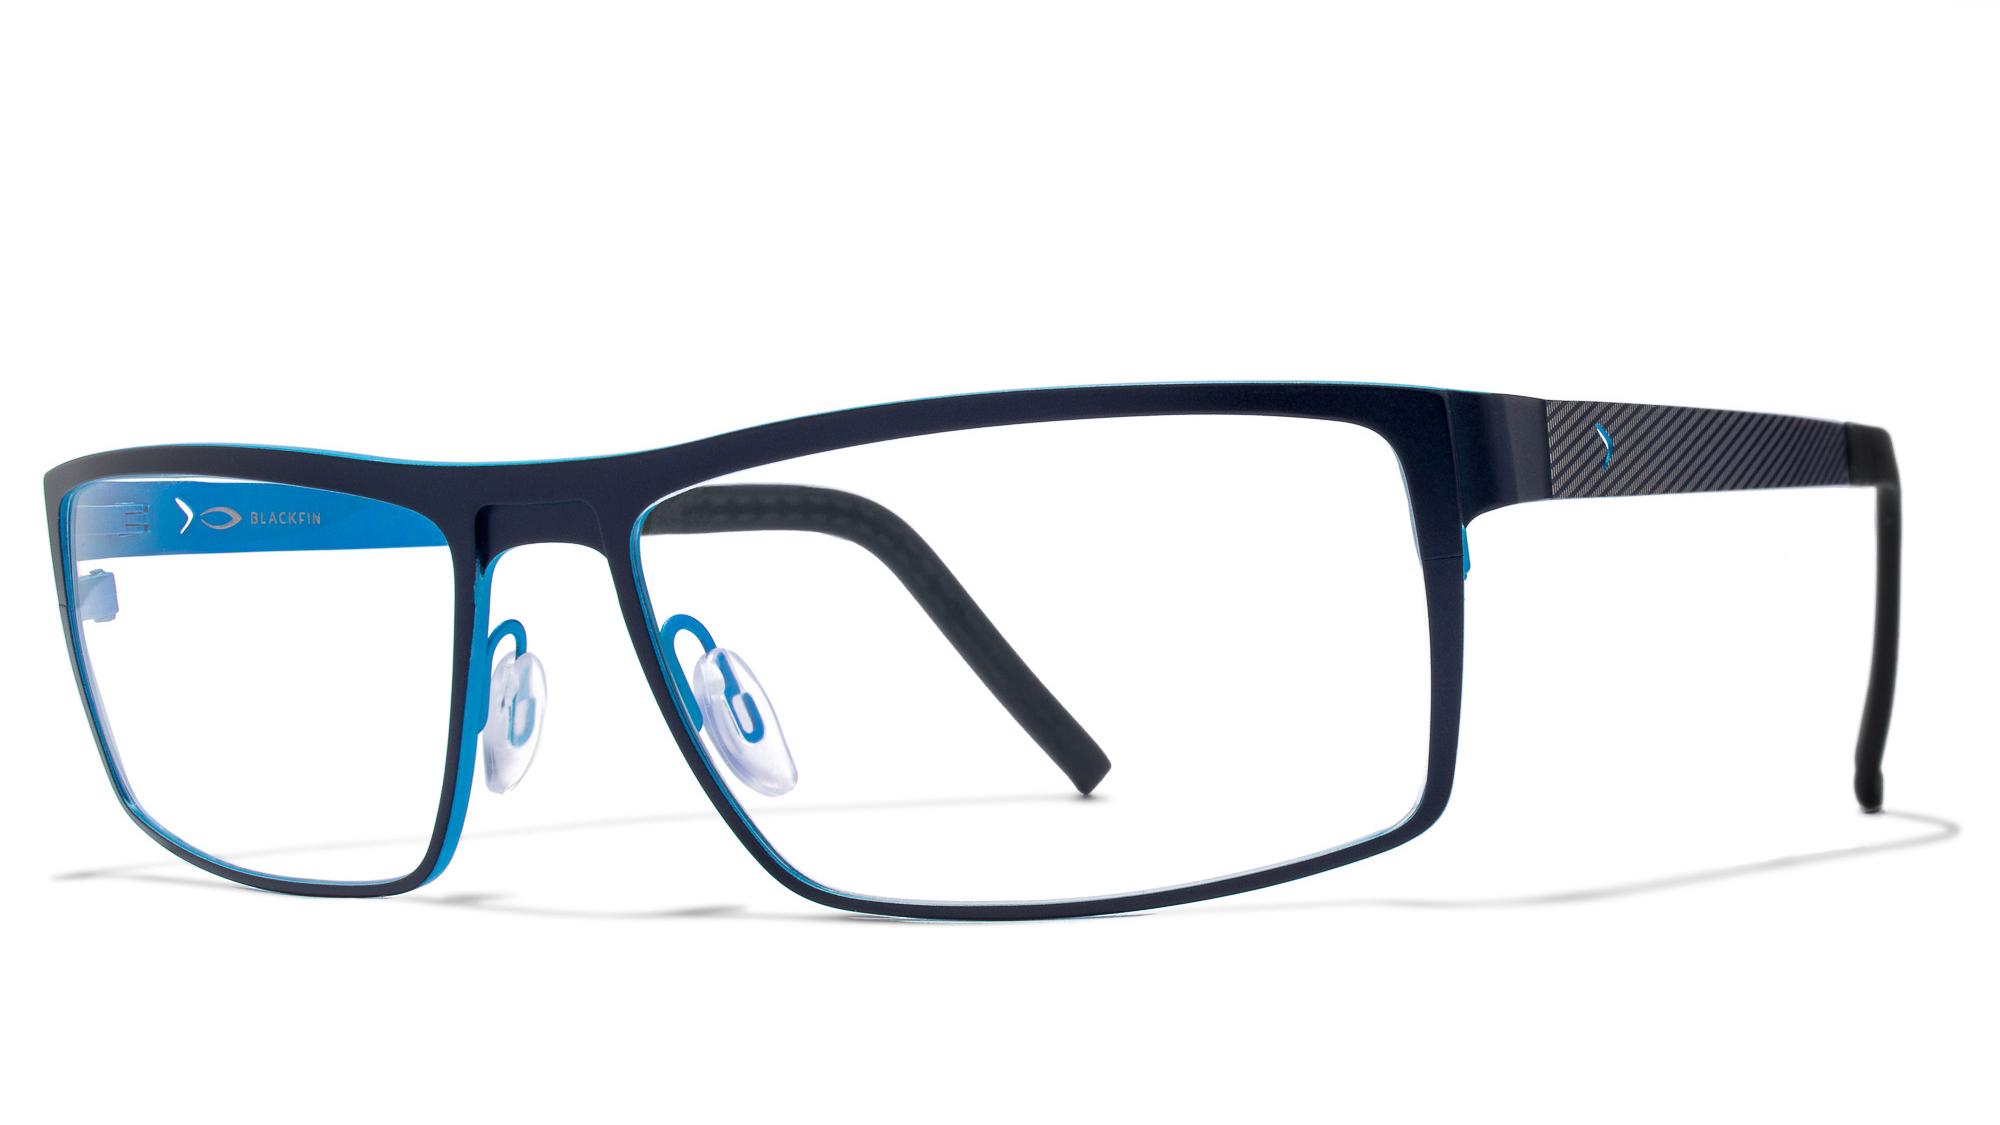 0195d032e9 Titanium Frame Glasses Uk « One More Soul